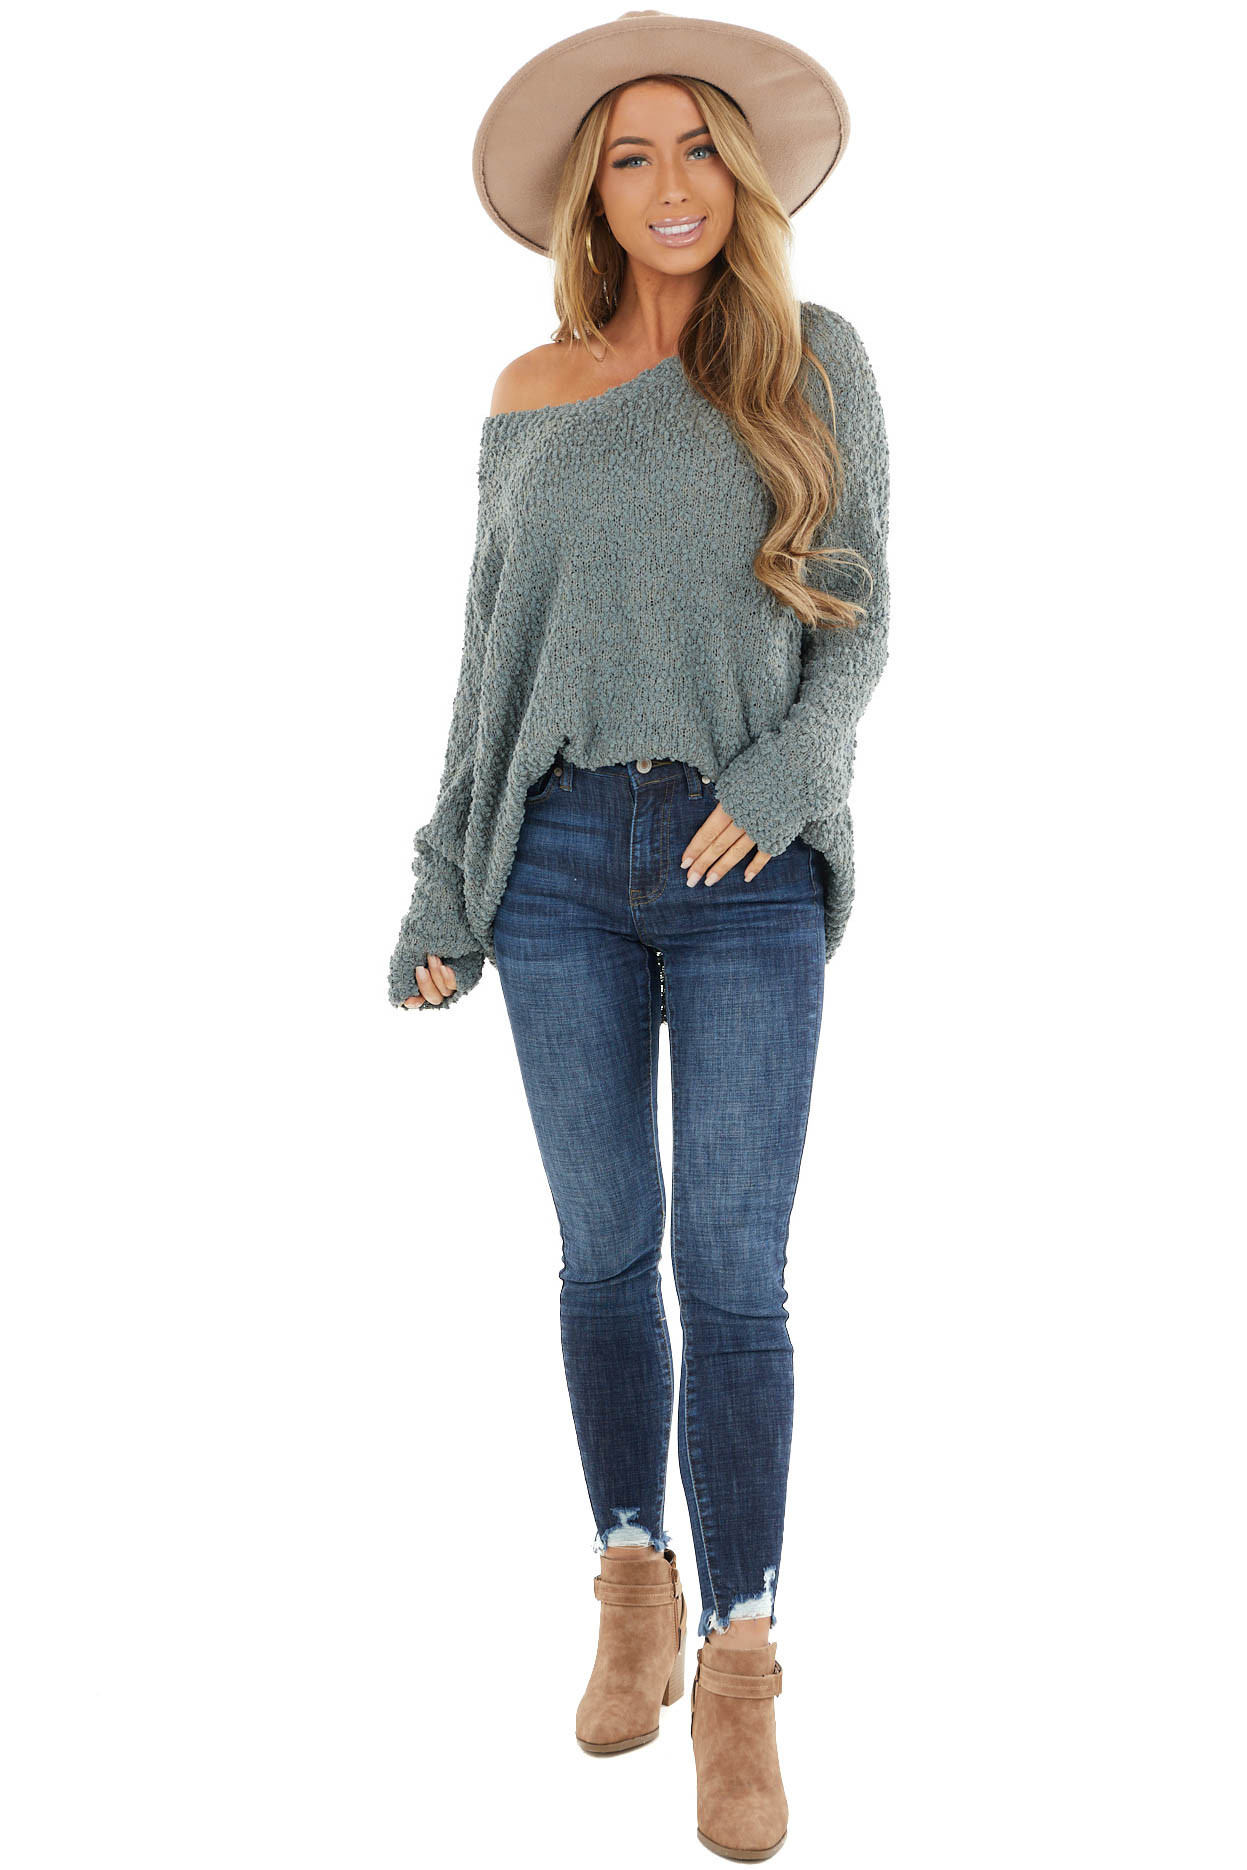 Dusty Pine V Neck Textured Sweater with Long Sleeves